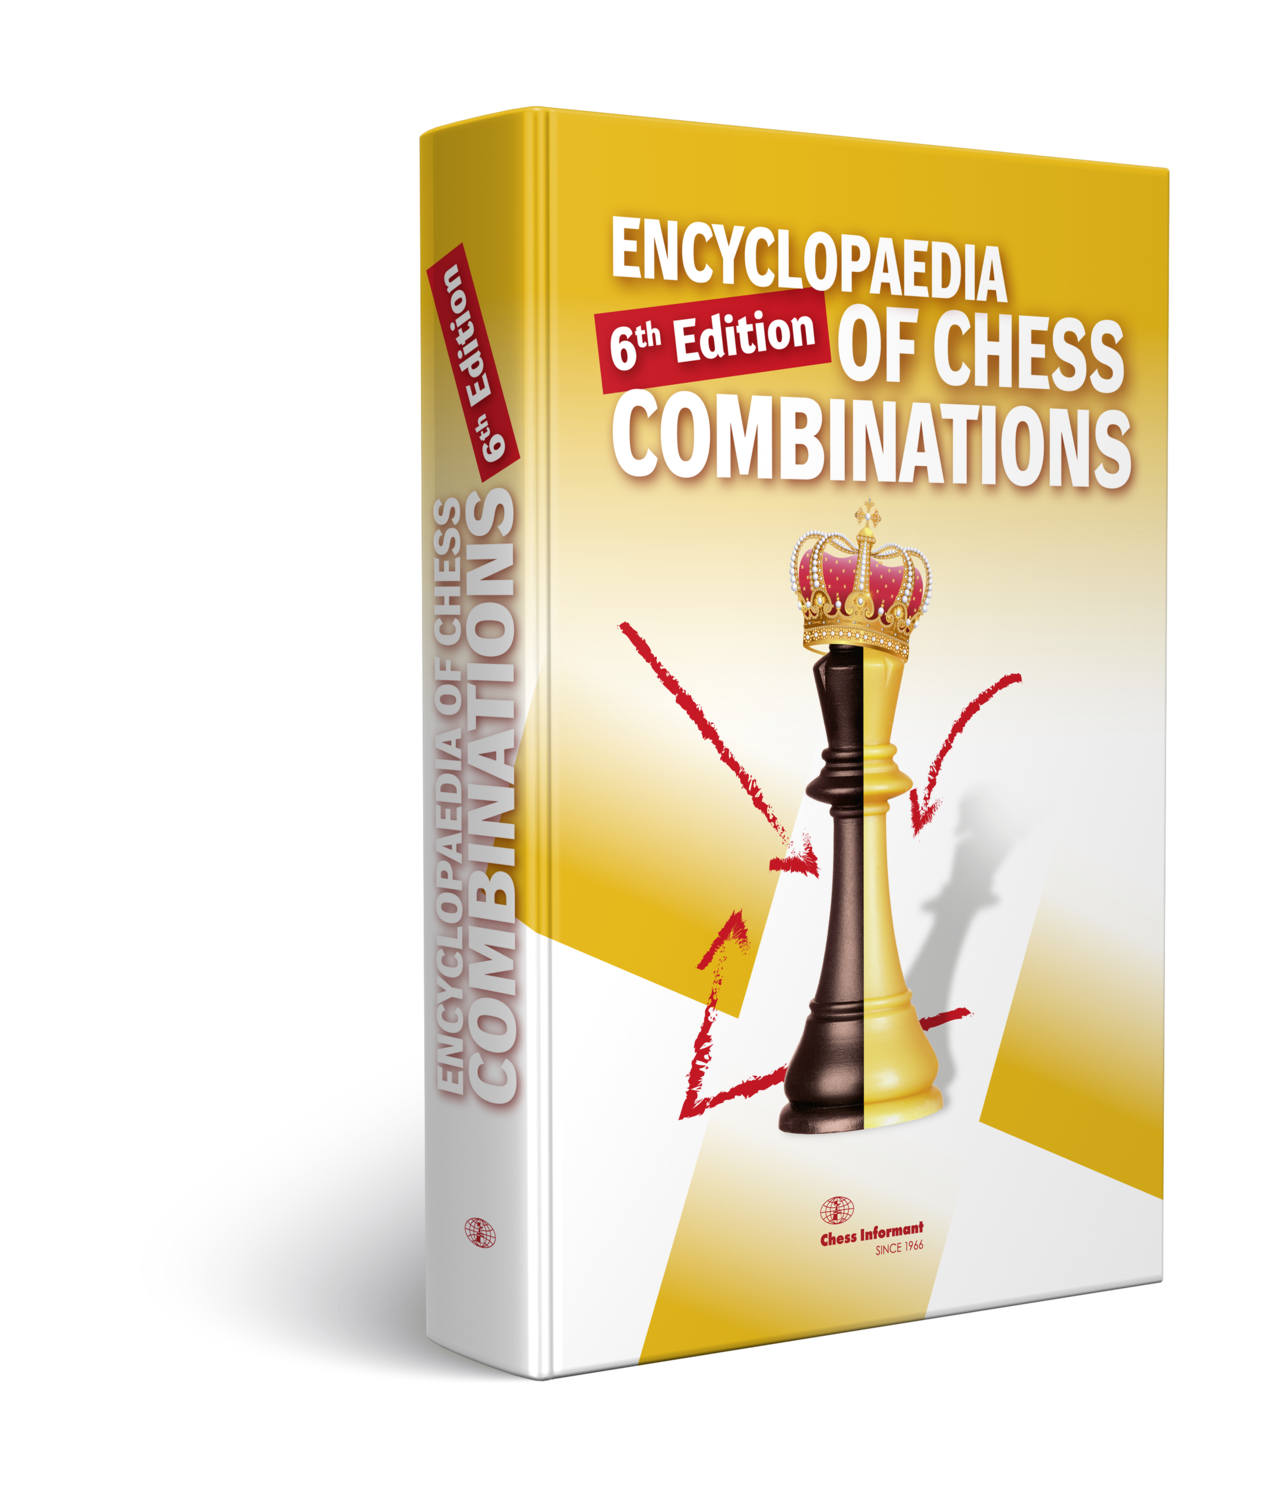 Encyclopaedia of Chess Combinations - 6th Edition